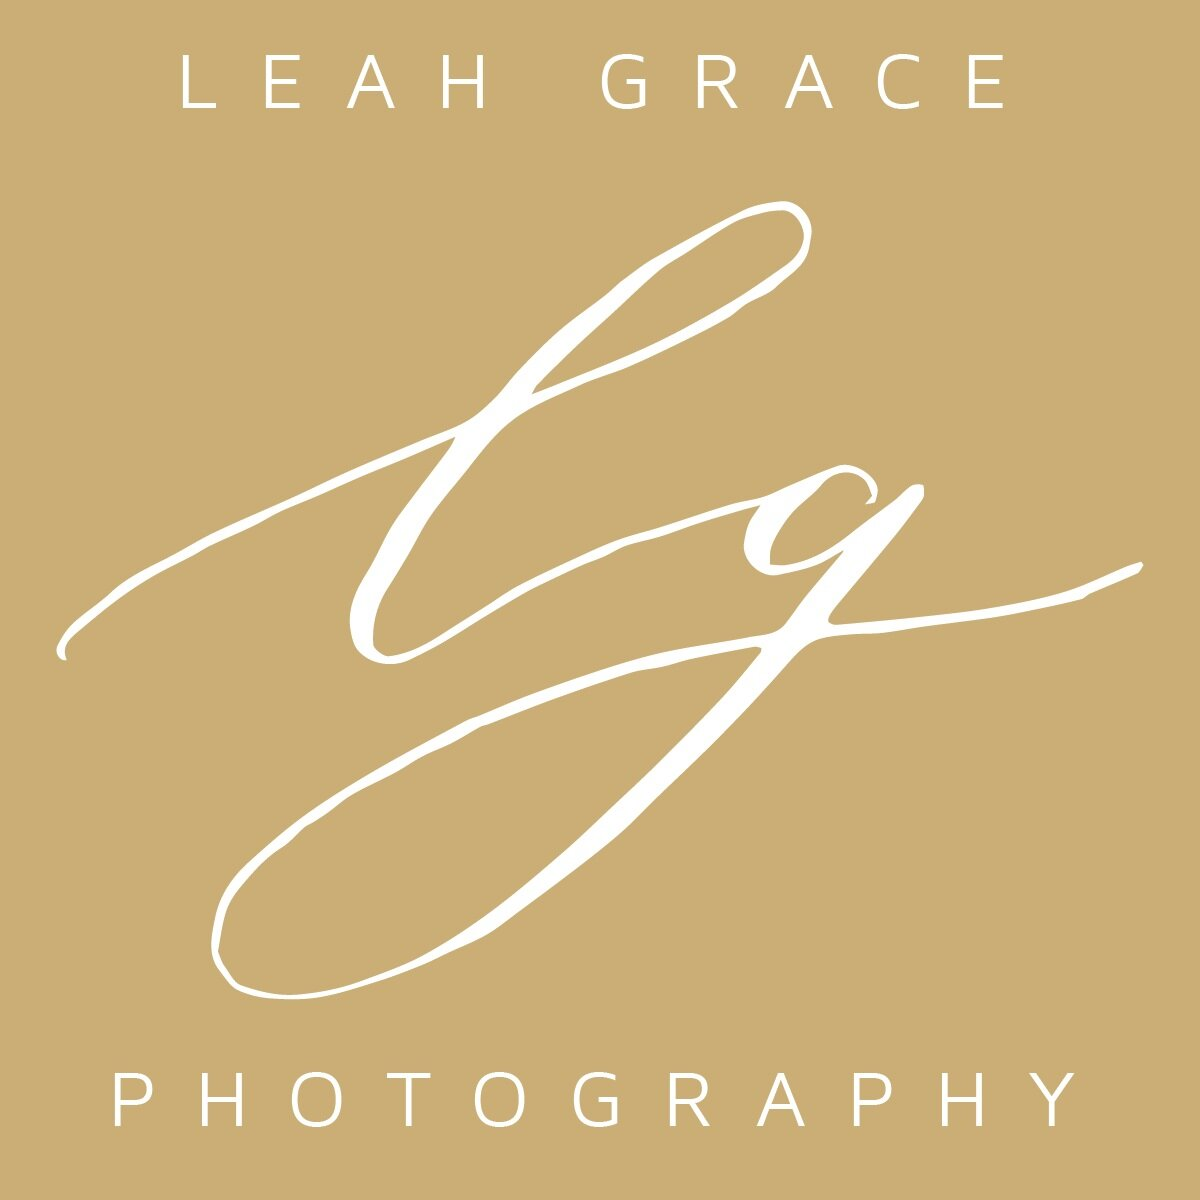 Leah Grace Photography